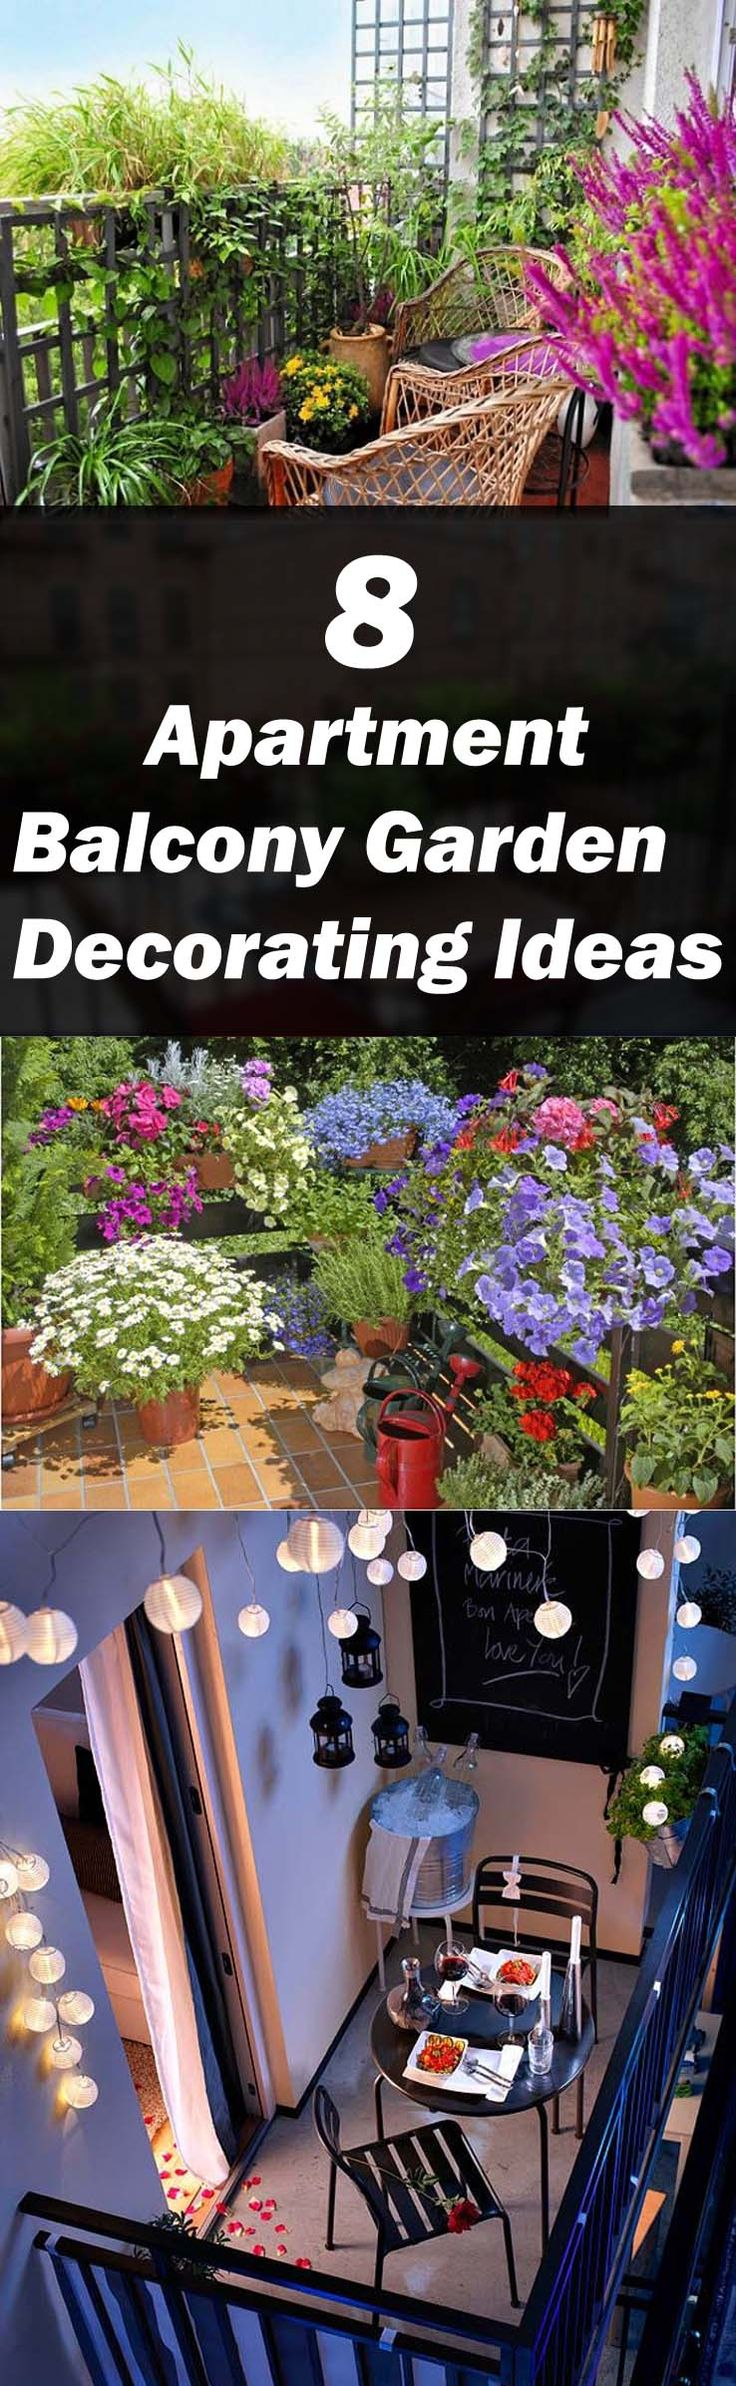 best 25+ small balcony garden ideas on pinterest | balcony garden